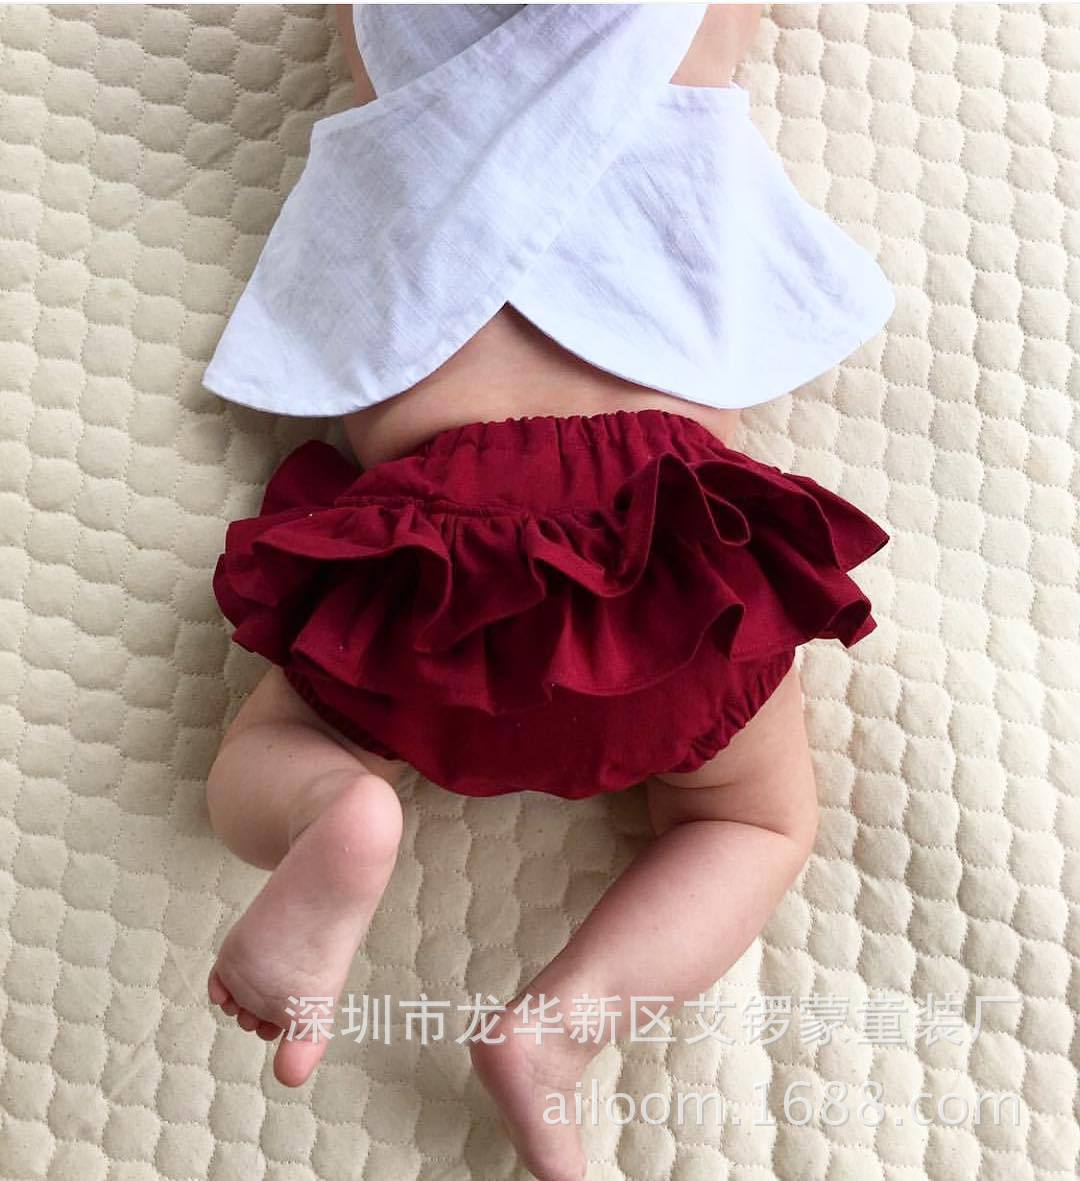 Bodysuit Baby Girl 2018 New Fashion Cute Baby Girl Clothes Sets Girl Clothes Outfits (Bodysuits+Accessories)